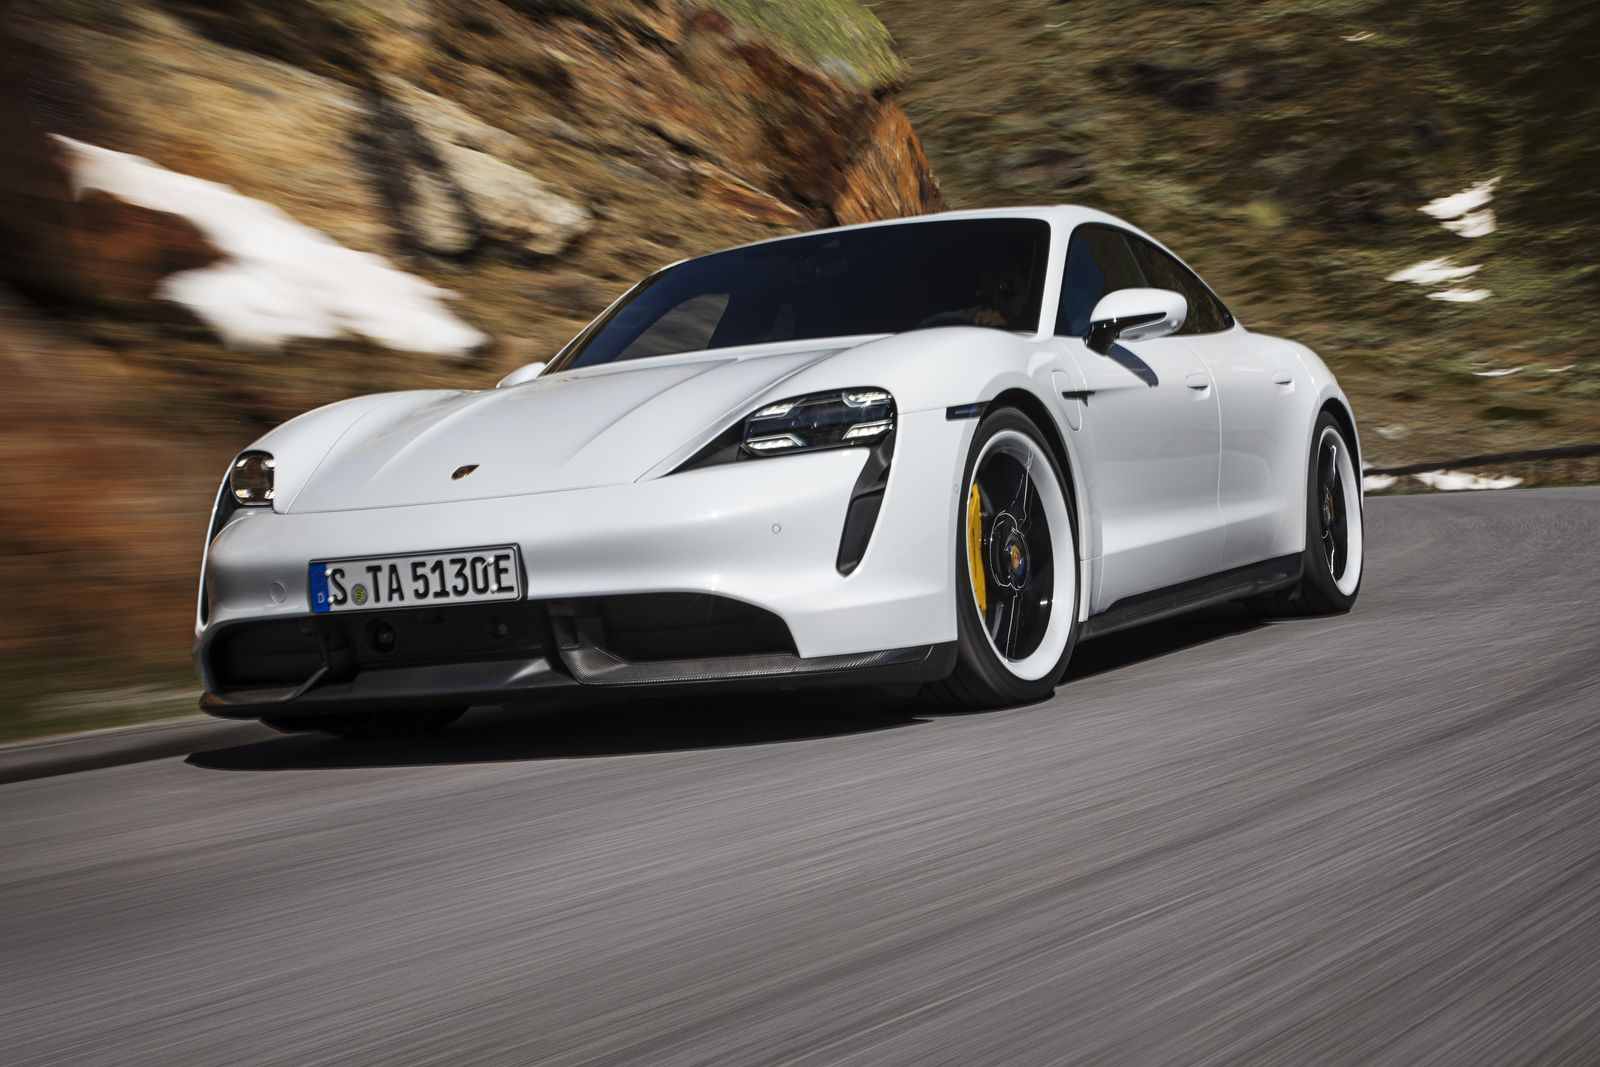 The 2020 Porsche Taycan Turbo S Is A 750 Hp Electric Super Sedan Porsche Taycan Electric Sports Car Porsche